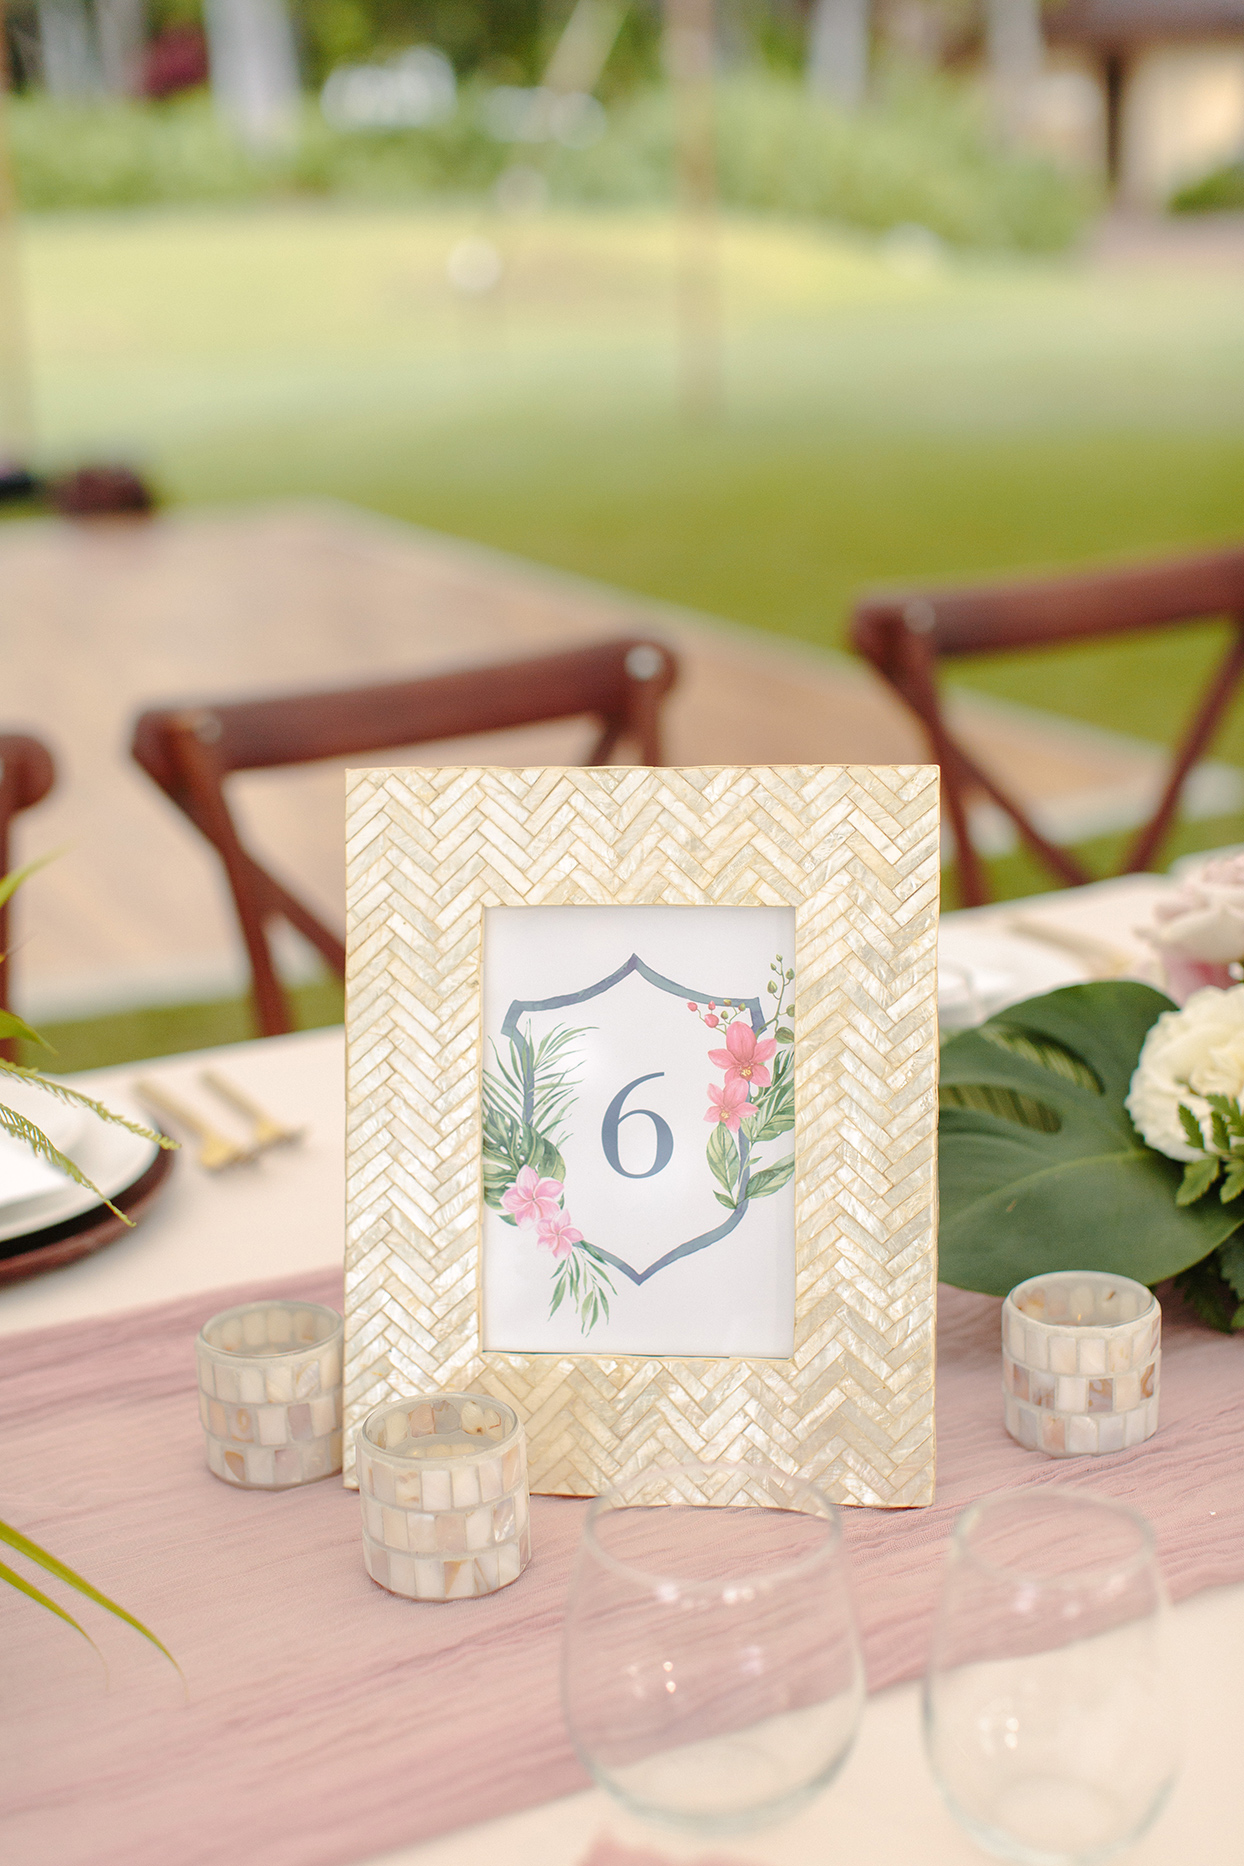 vanessa nathan wedding crest table number in gold frame on table